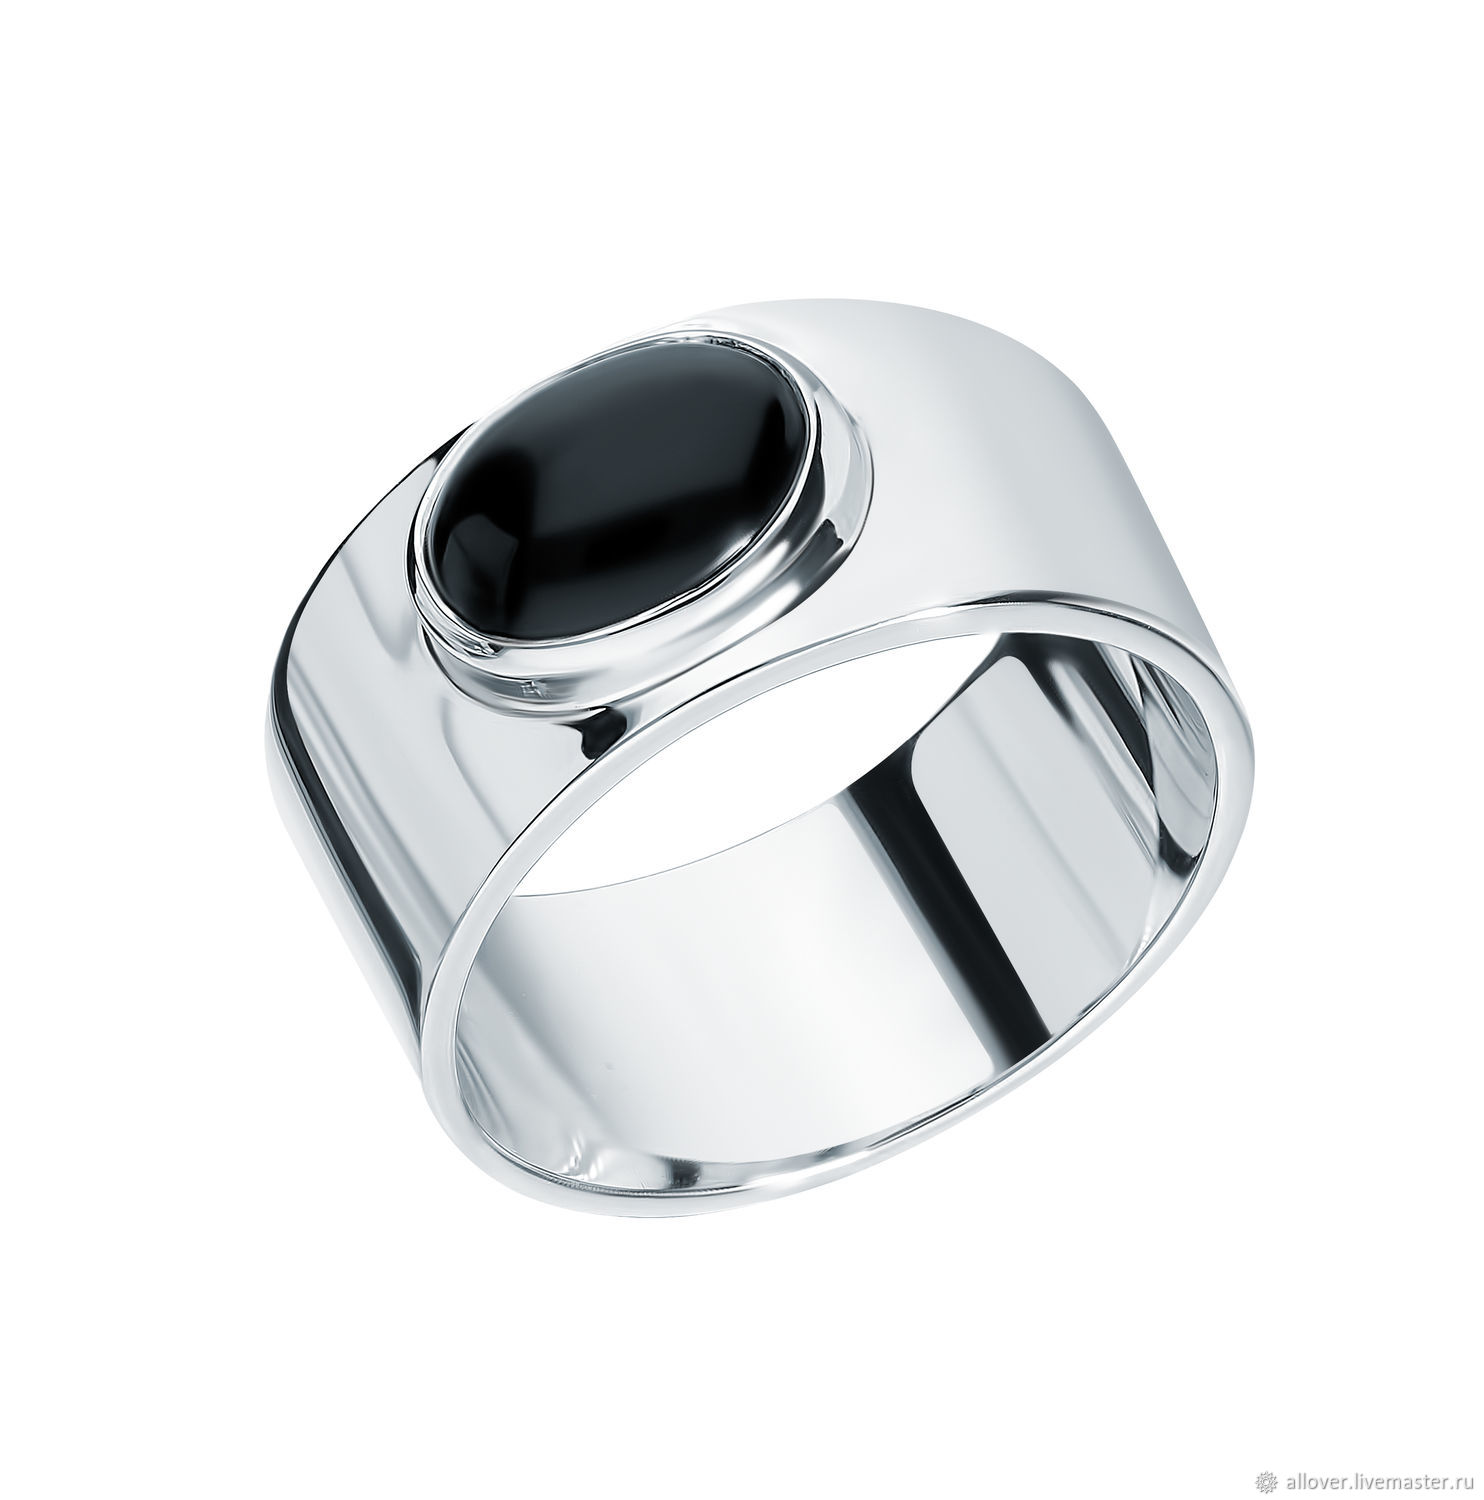 Wide ring with natural black agate stone, Rings, Moscow,  Фото №1